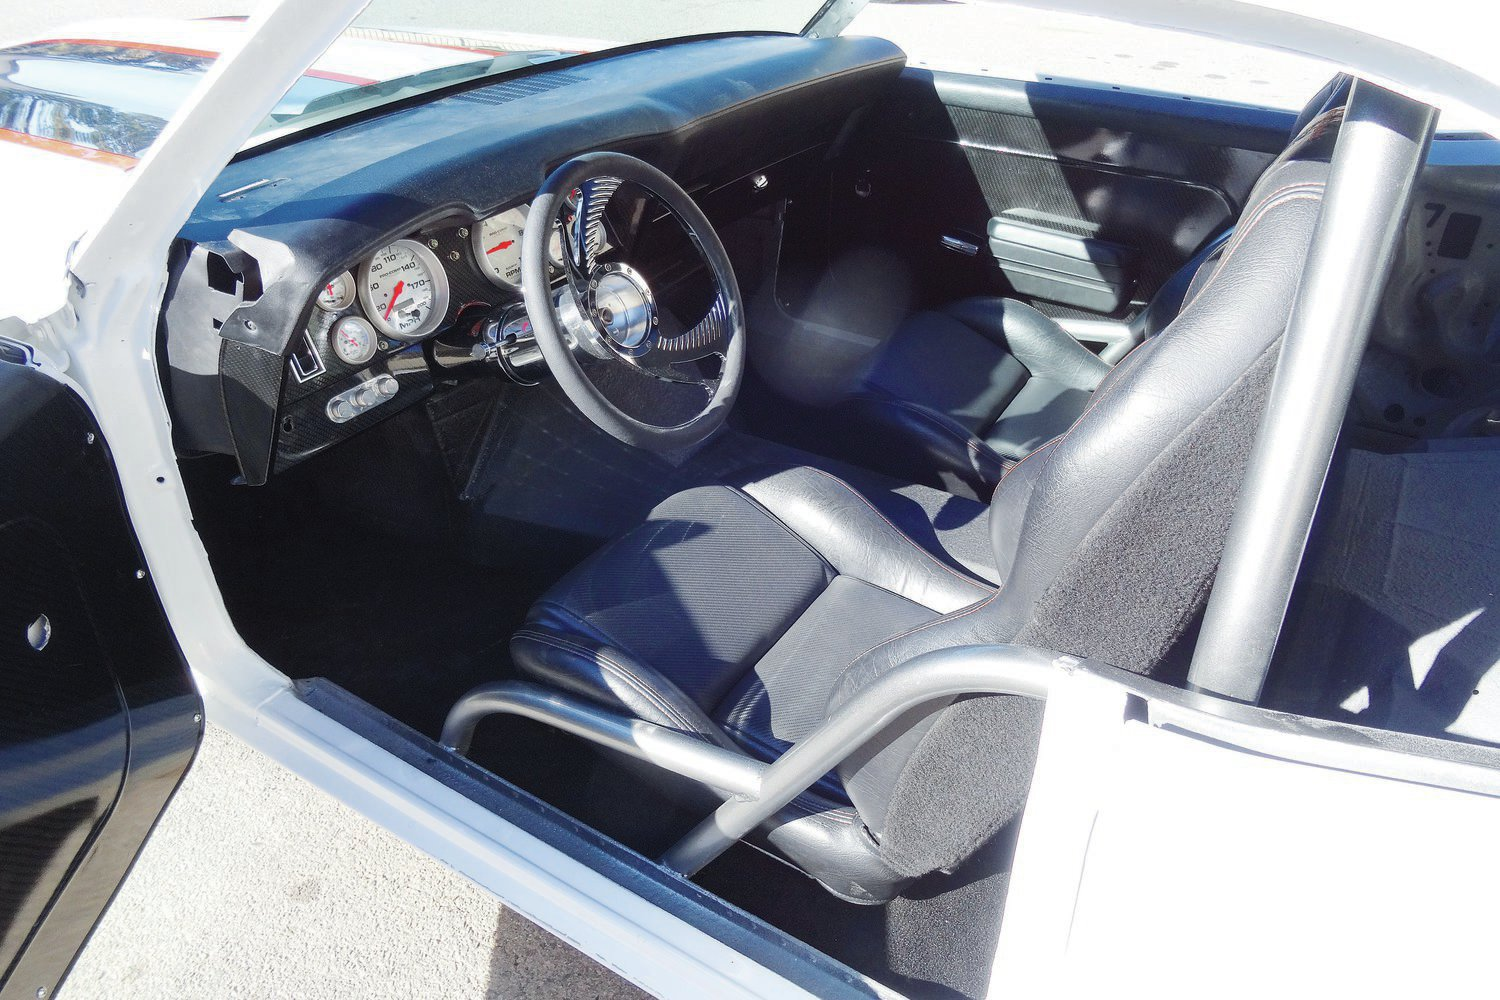 The interior view shows that the rear engine does intrude a bit into the passenger compartment. American V8 Classics and Customs lengthened the ididit steering column and dash and moved the seats rearward to compensate.